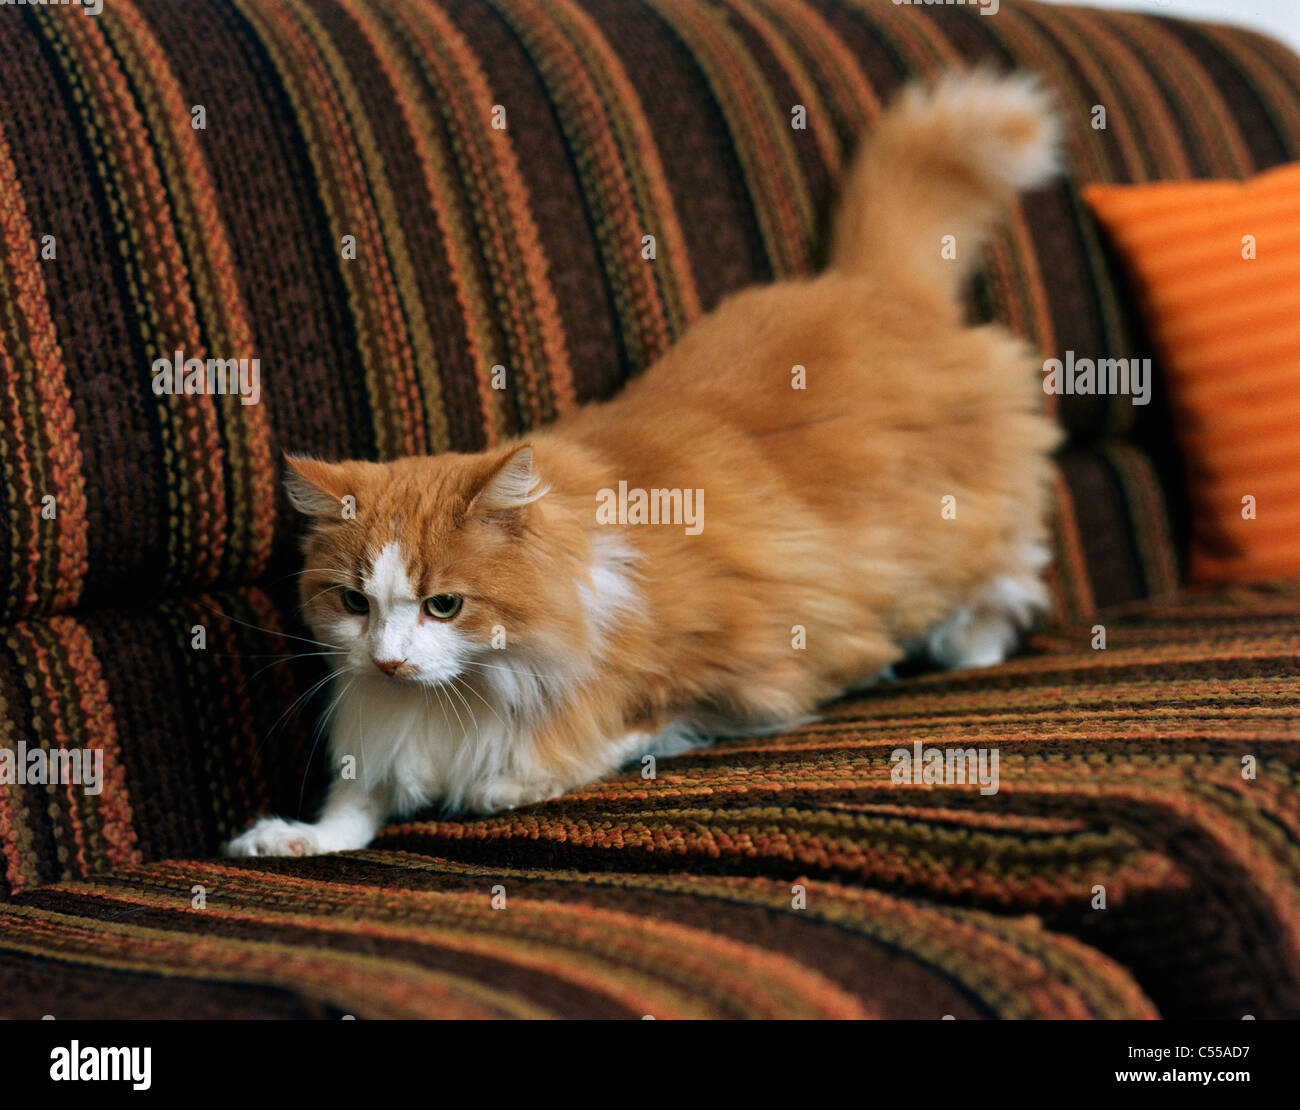 Chat persan Banque D'Images